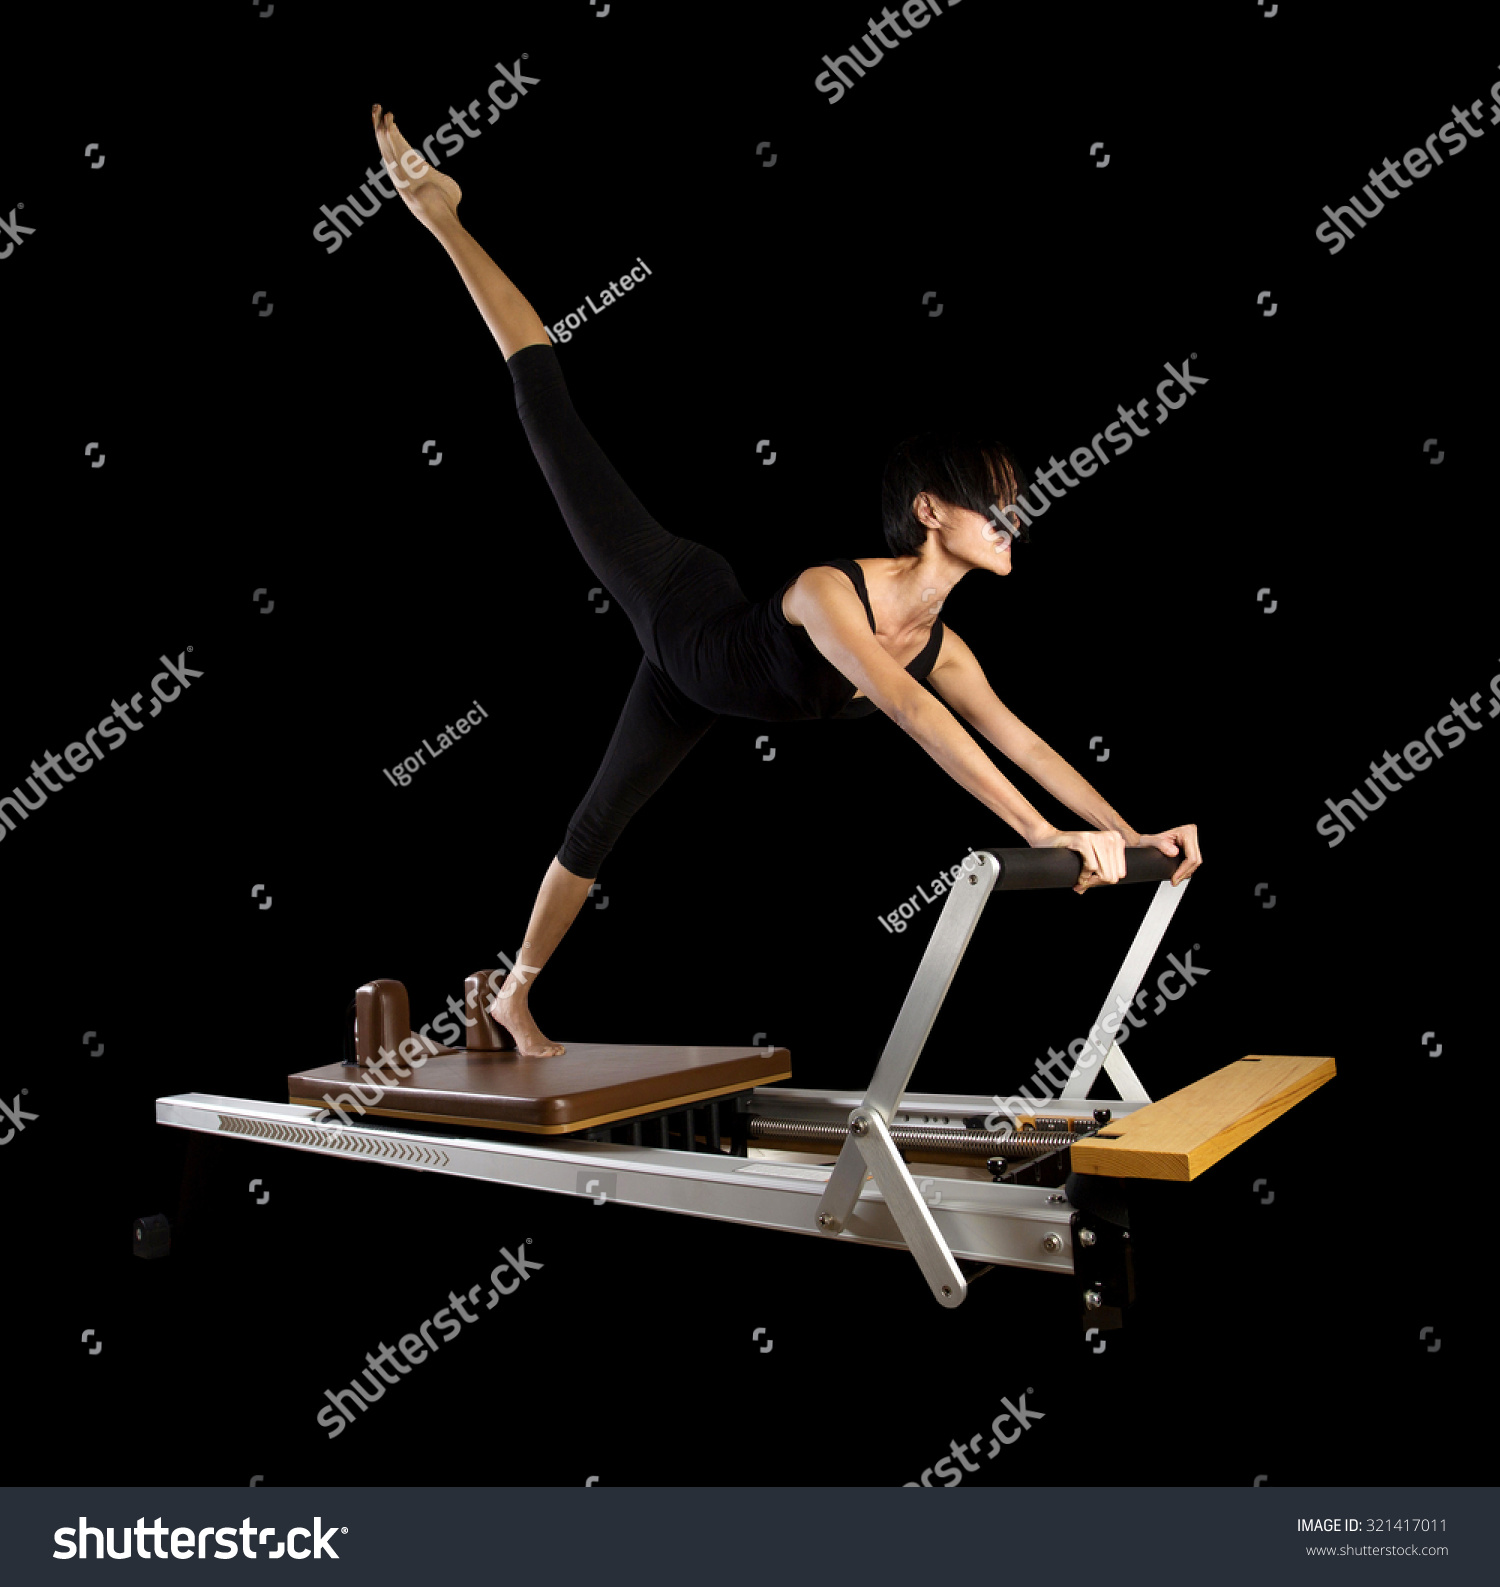 Woman Pilates Chair Exercises Fitness Stock Photo: Pilates Reformer Workout Exercises Woman Brunette At Gym